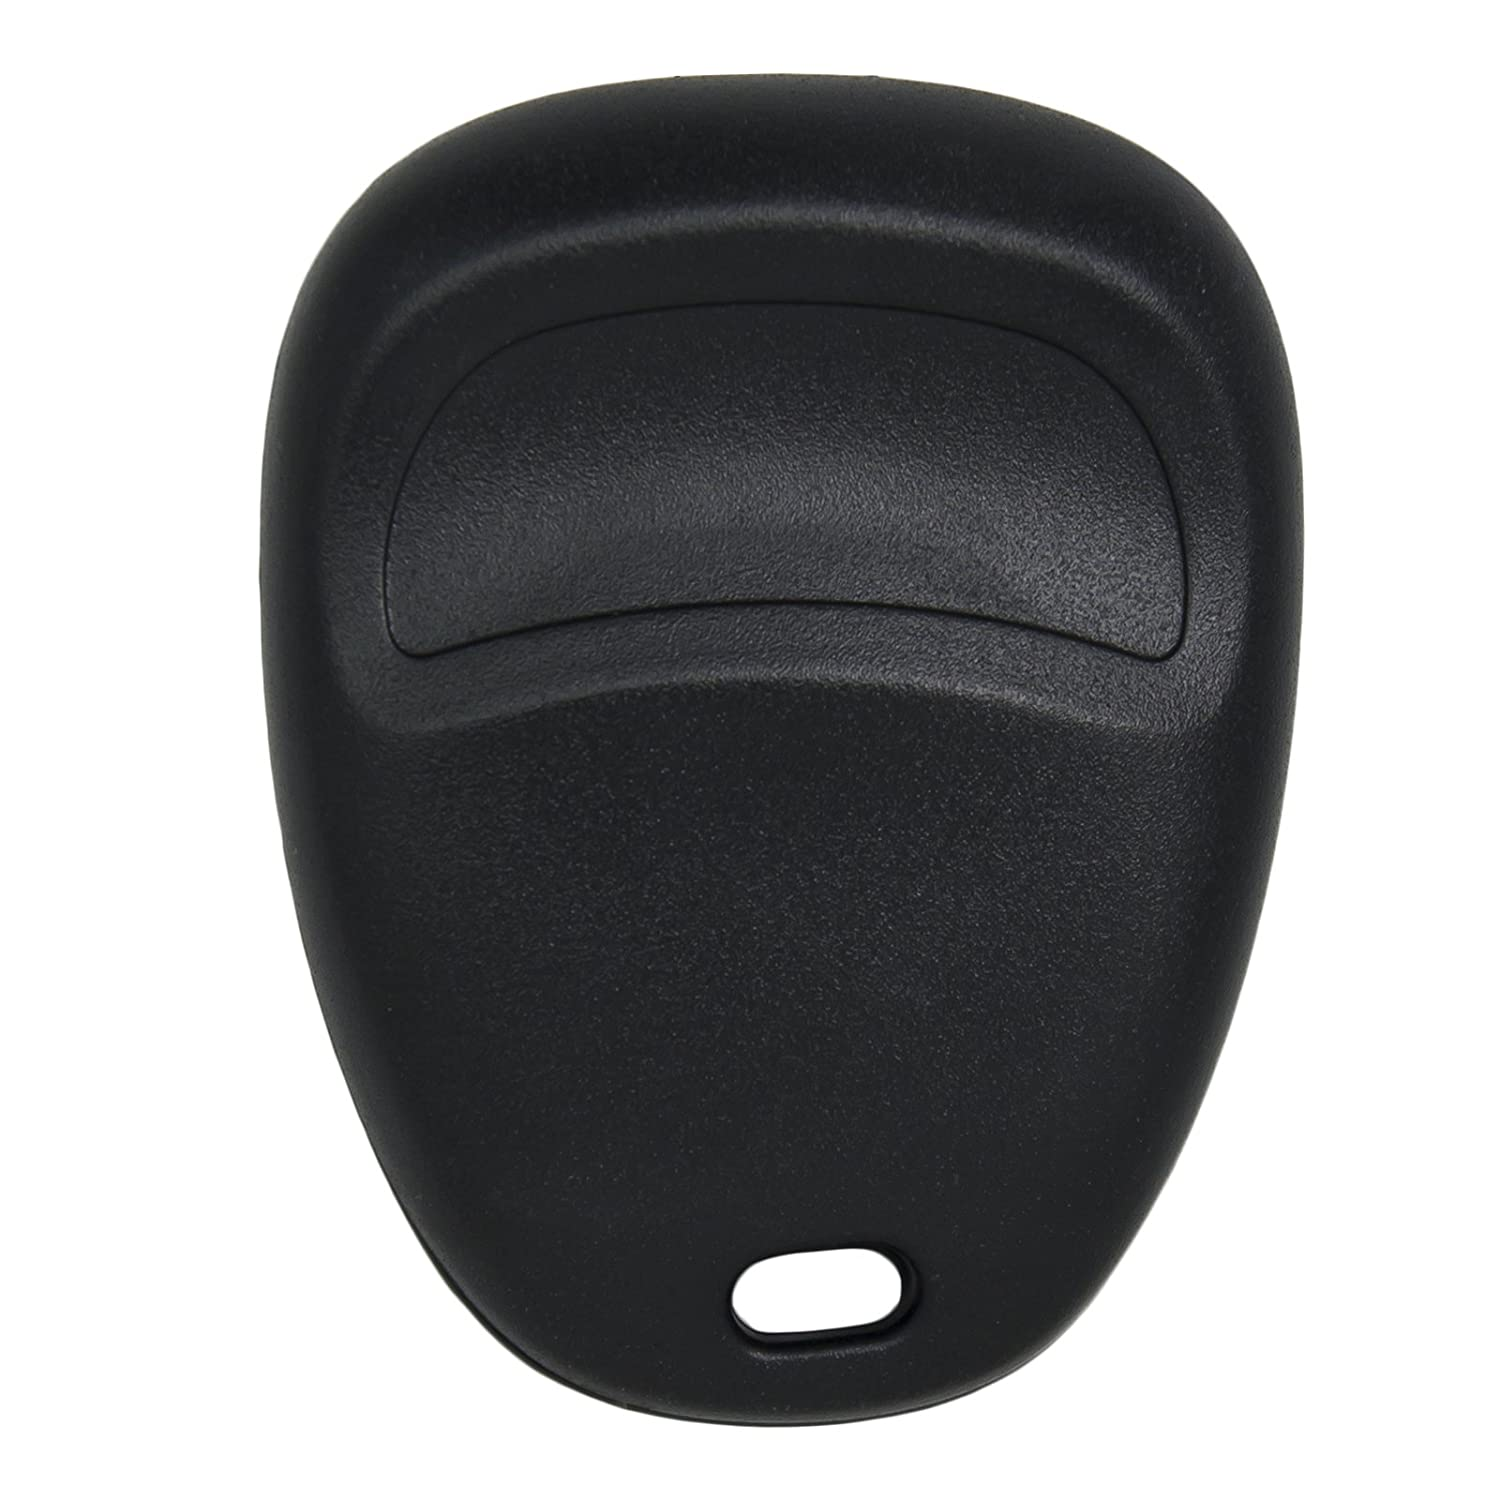 Keyless2Go Keyless Entry Car Key Replacement for Vehicles That Use 3 Button MYT3X6898B R-GM-305.go